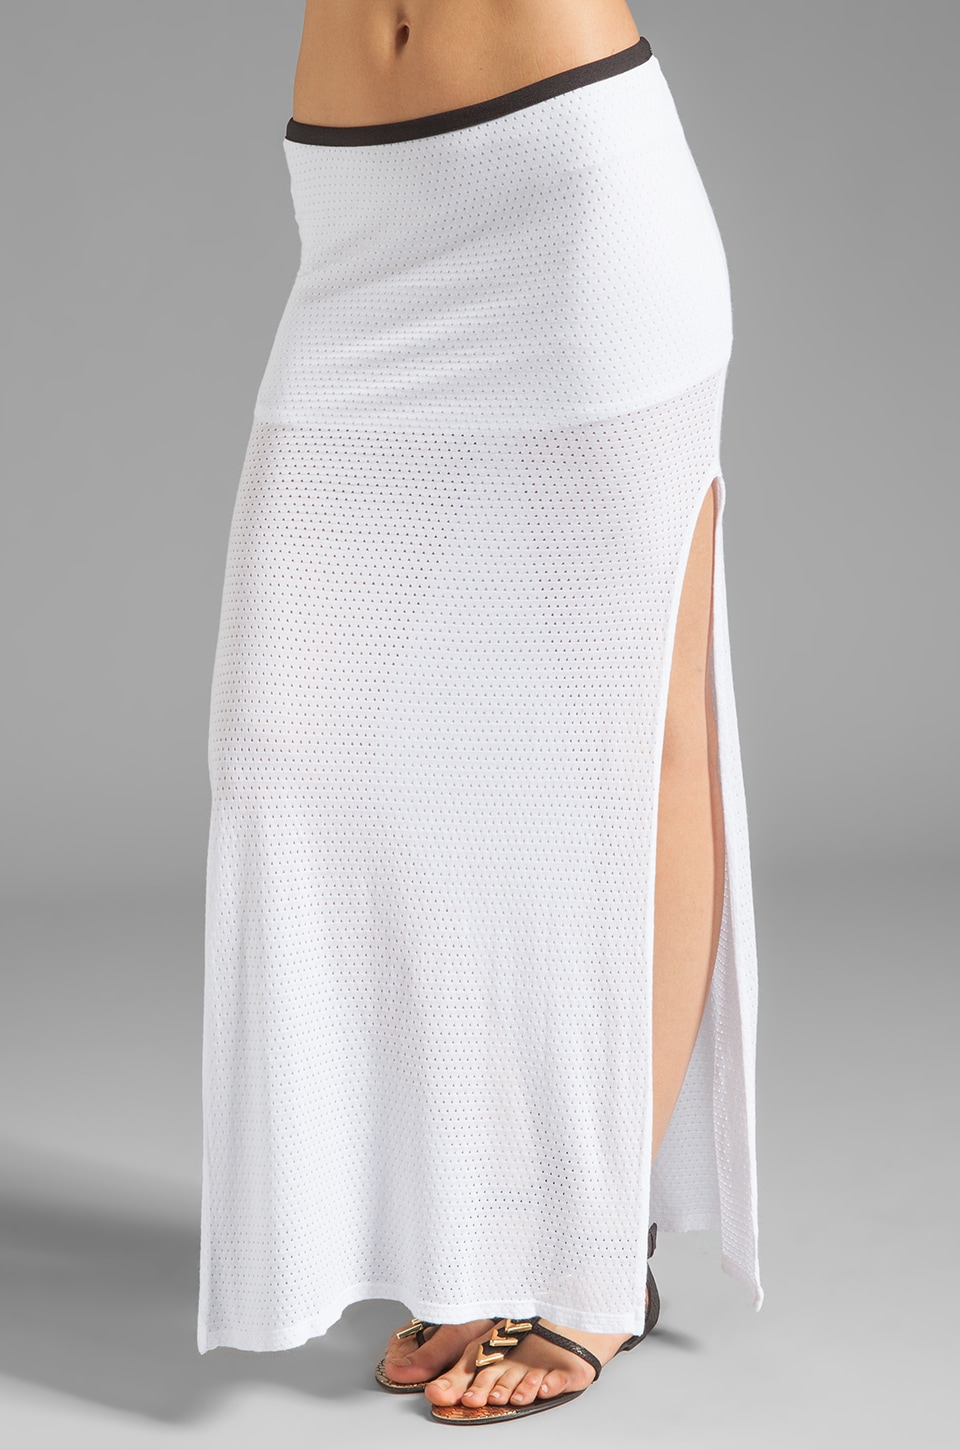 MONROW High Slit Skirt in White